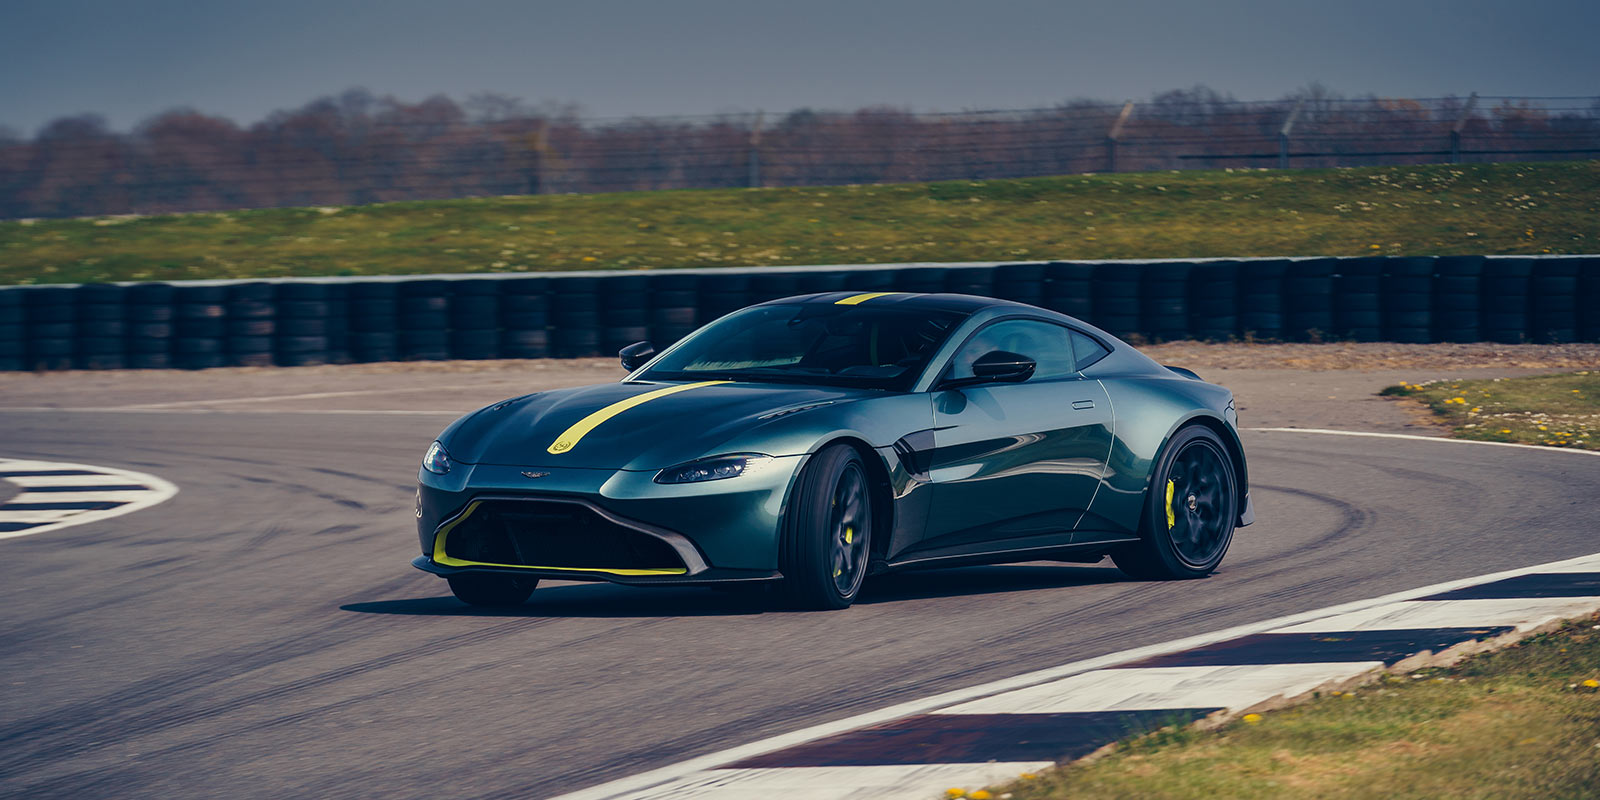 Aston Martin Vantage AMR - Limited Edition - Pure, Engaging Performance image 11